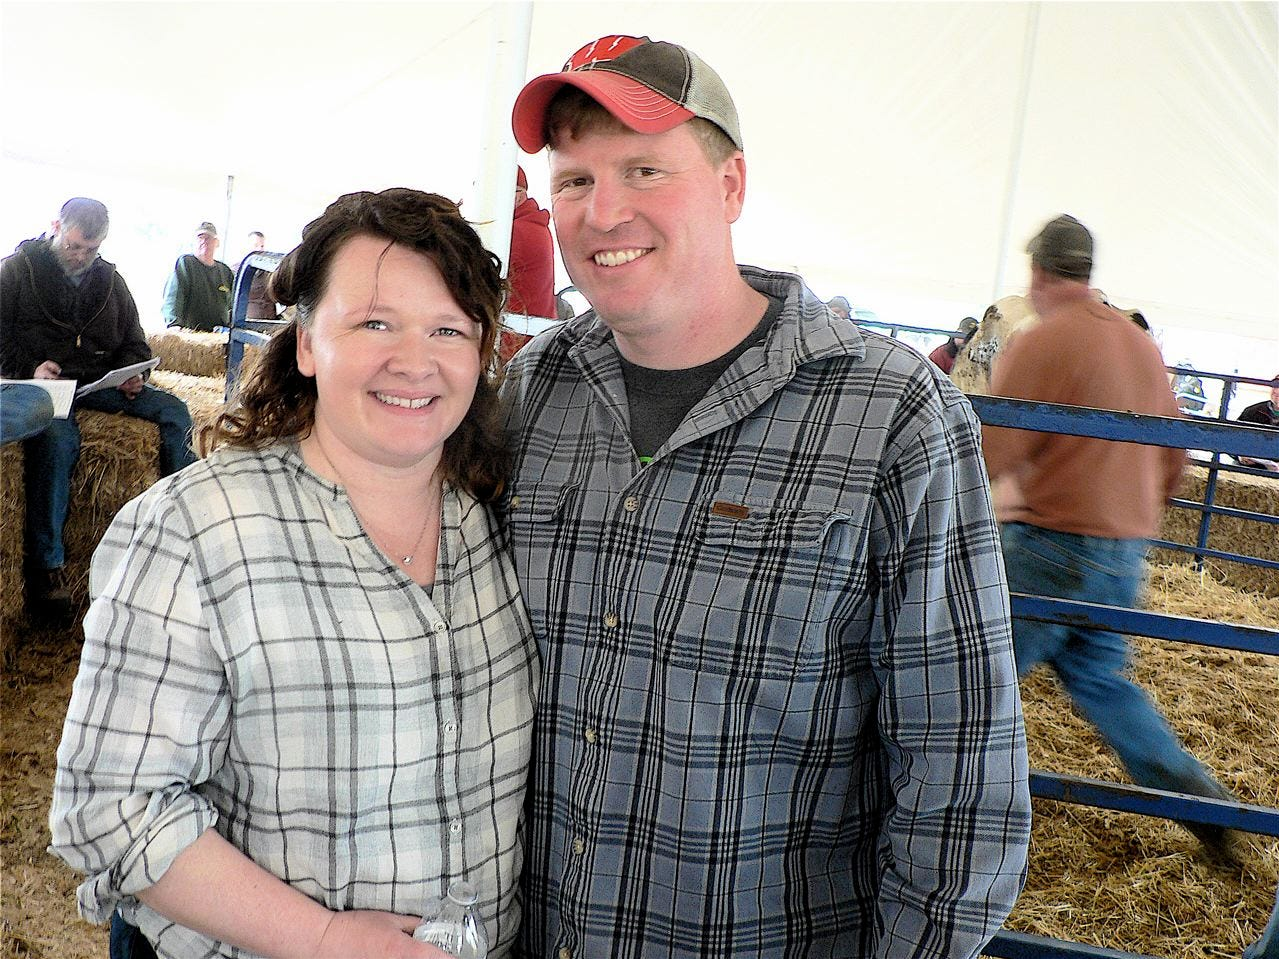 Herd owners Mark and Beth Heinze were pleased with the sale.